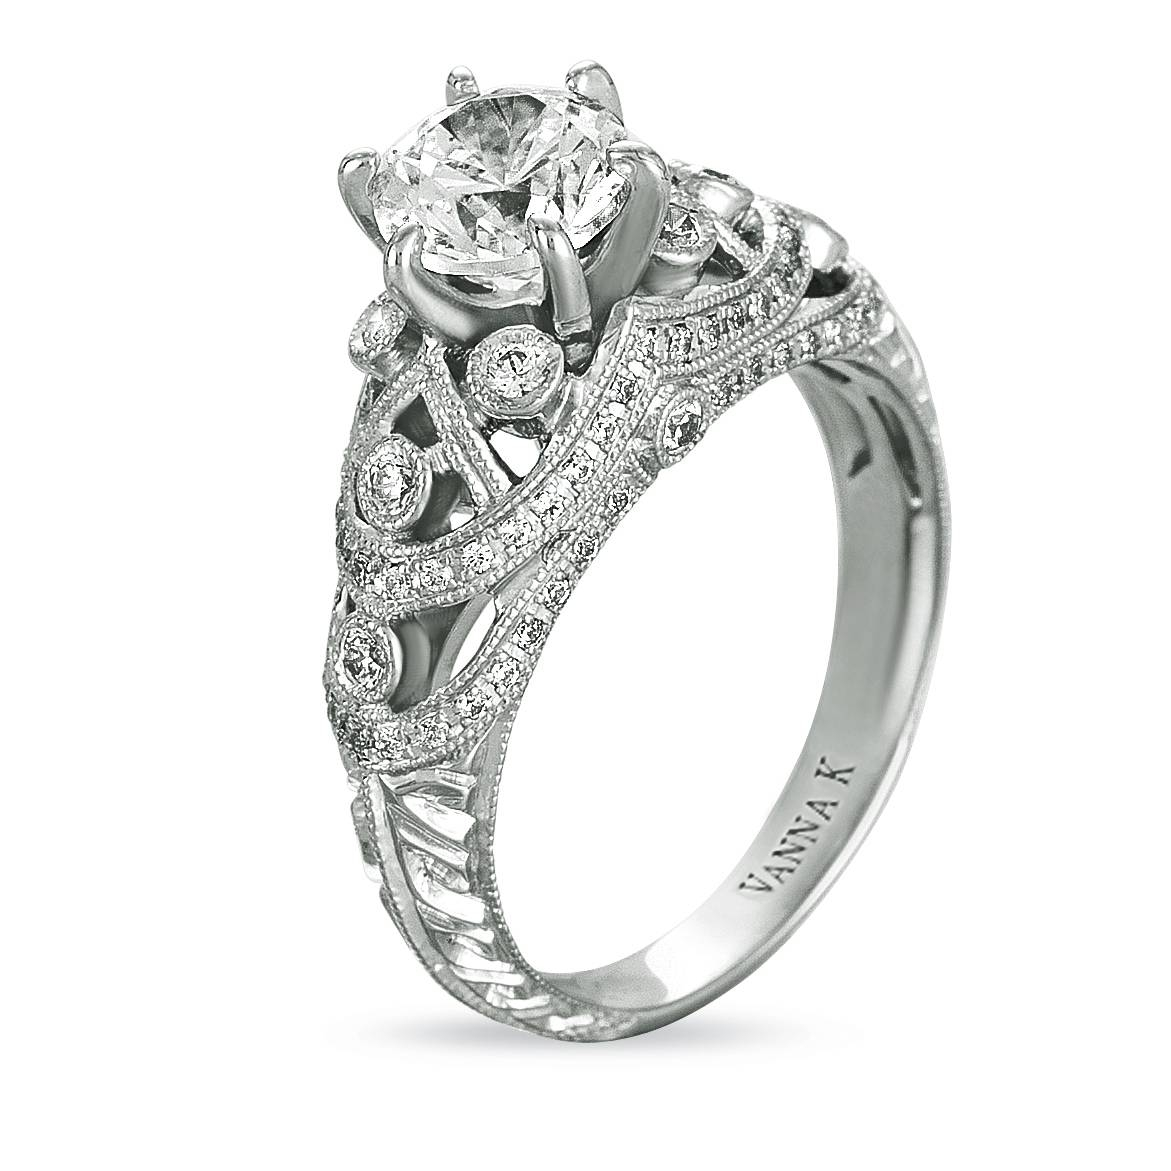 Engagement Rings : Unique Diamond Rings Awesome Engagement Ring Throughout Modern Design Wedding Rings (View 6 of 15)